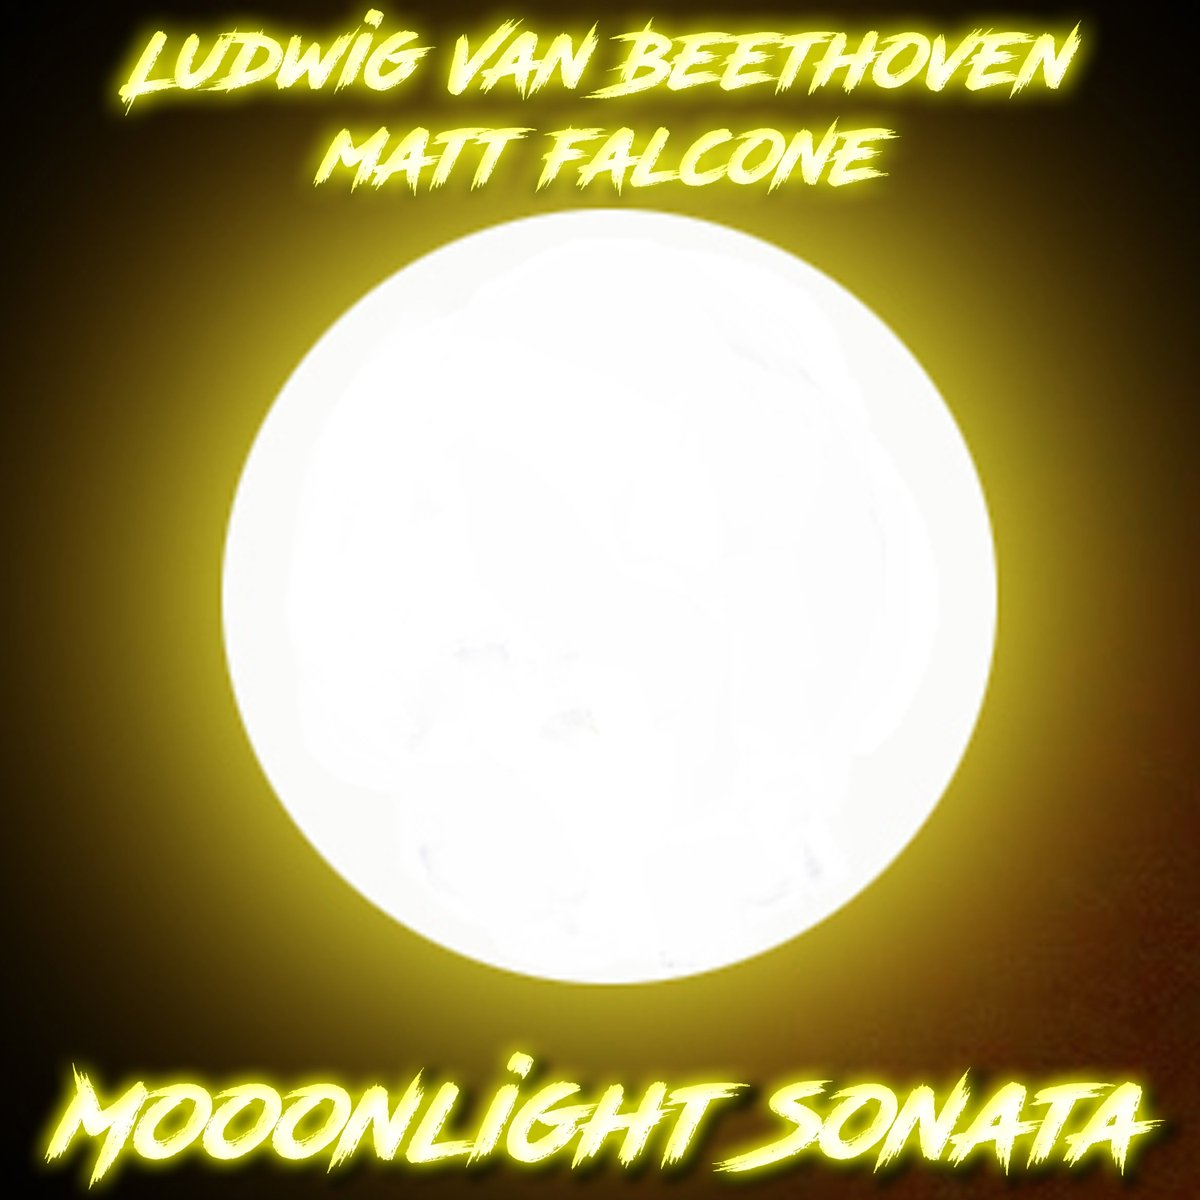 http://www. LaserLightShow.ORG/ludwig-van-bee thoven.html &nbsp; …   - Coming Sept 03.2018 - Piano Sonata No. 14 &quot;Quasi una fantasia&quot;, Op.  27, popularly known as the &quot;Moonlight Sonata&quot;, is a piano sonata  completed in the year 1801 and remixed in 2018 by Matt Falcone on  synthesizers. <br>http://pic.twitter.com/BuXRfpn1F6